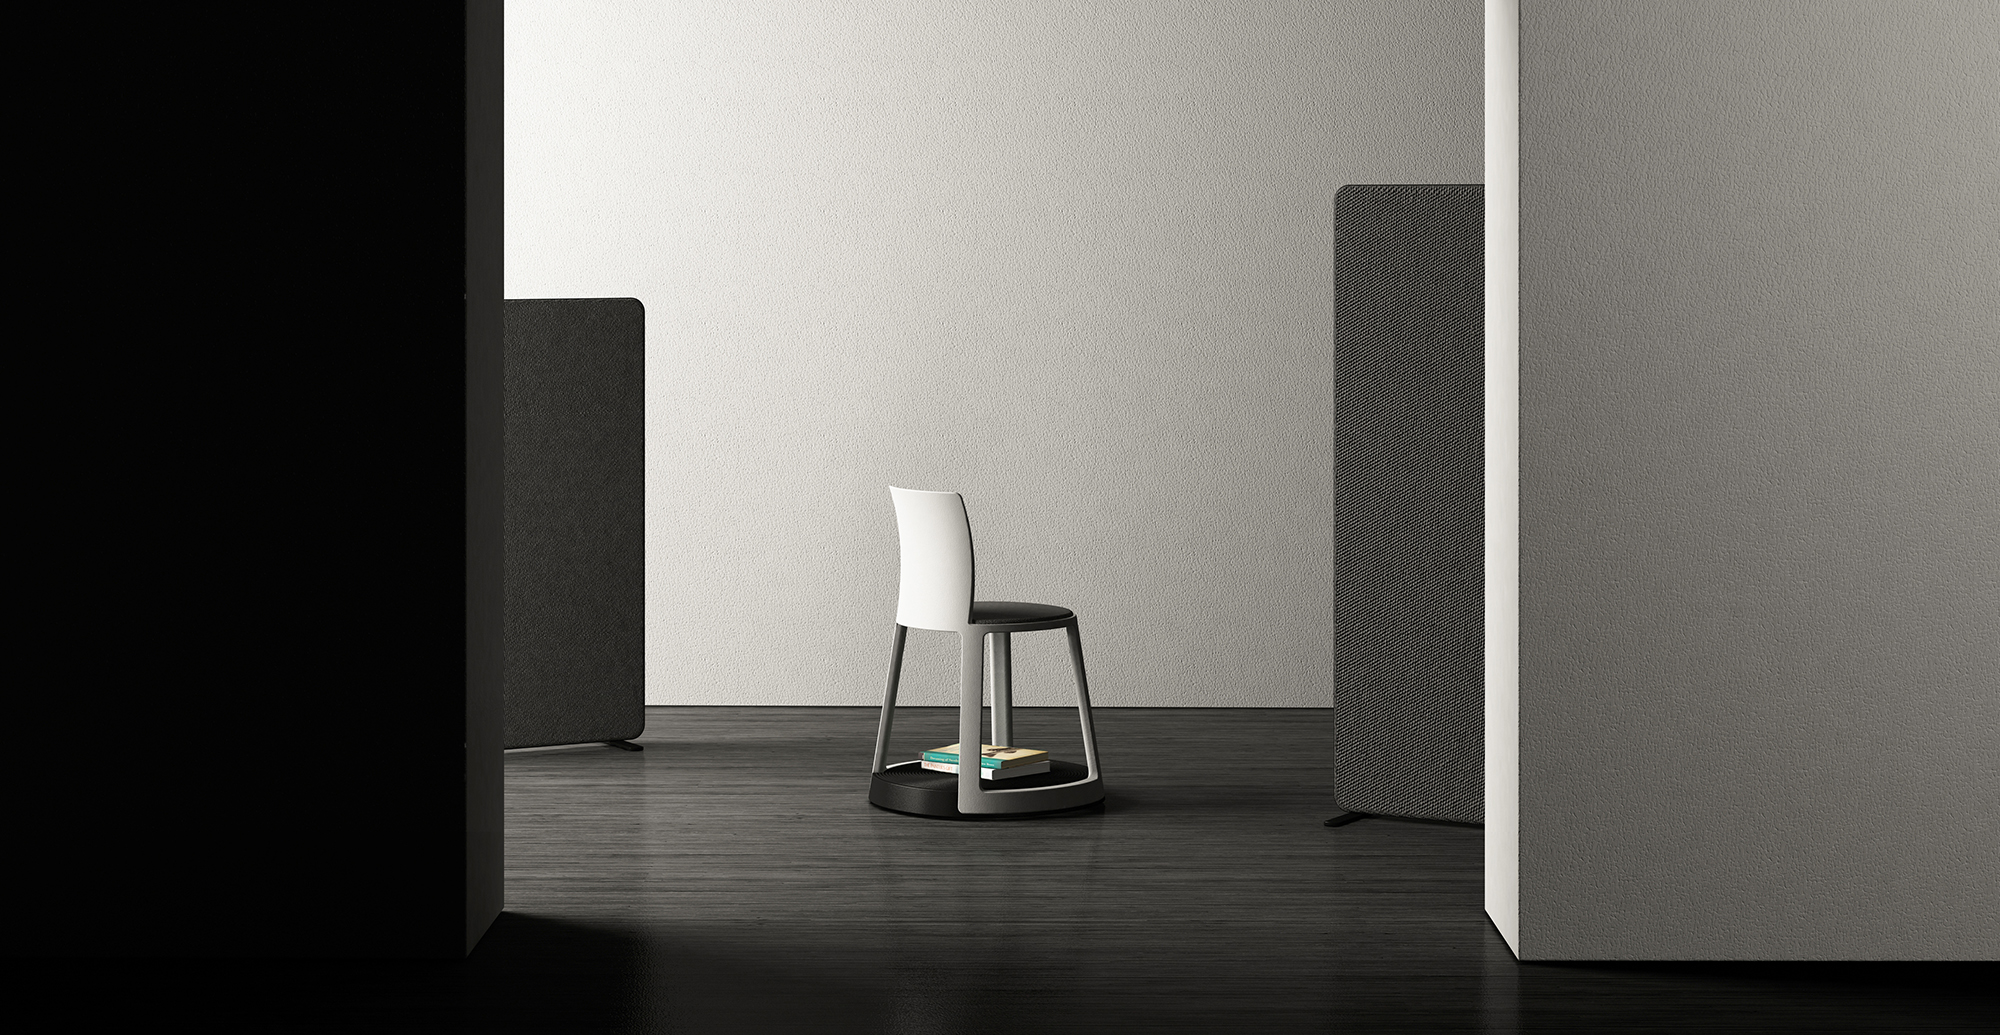 Revo - An original smart chair for office, smart office, laboratory.